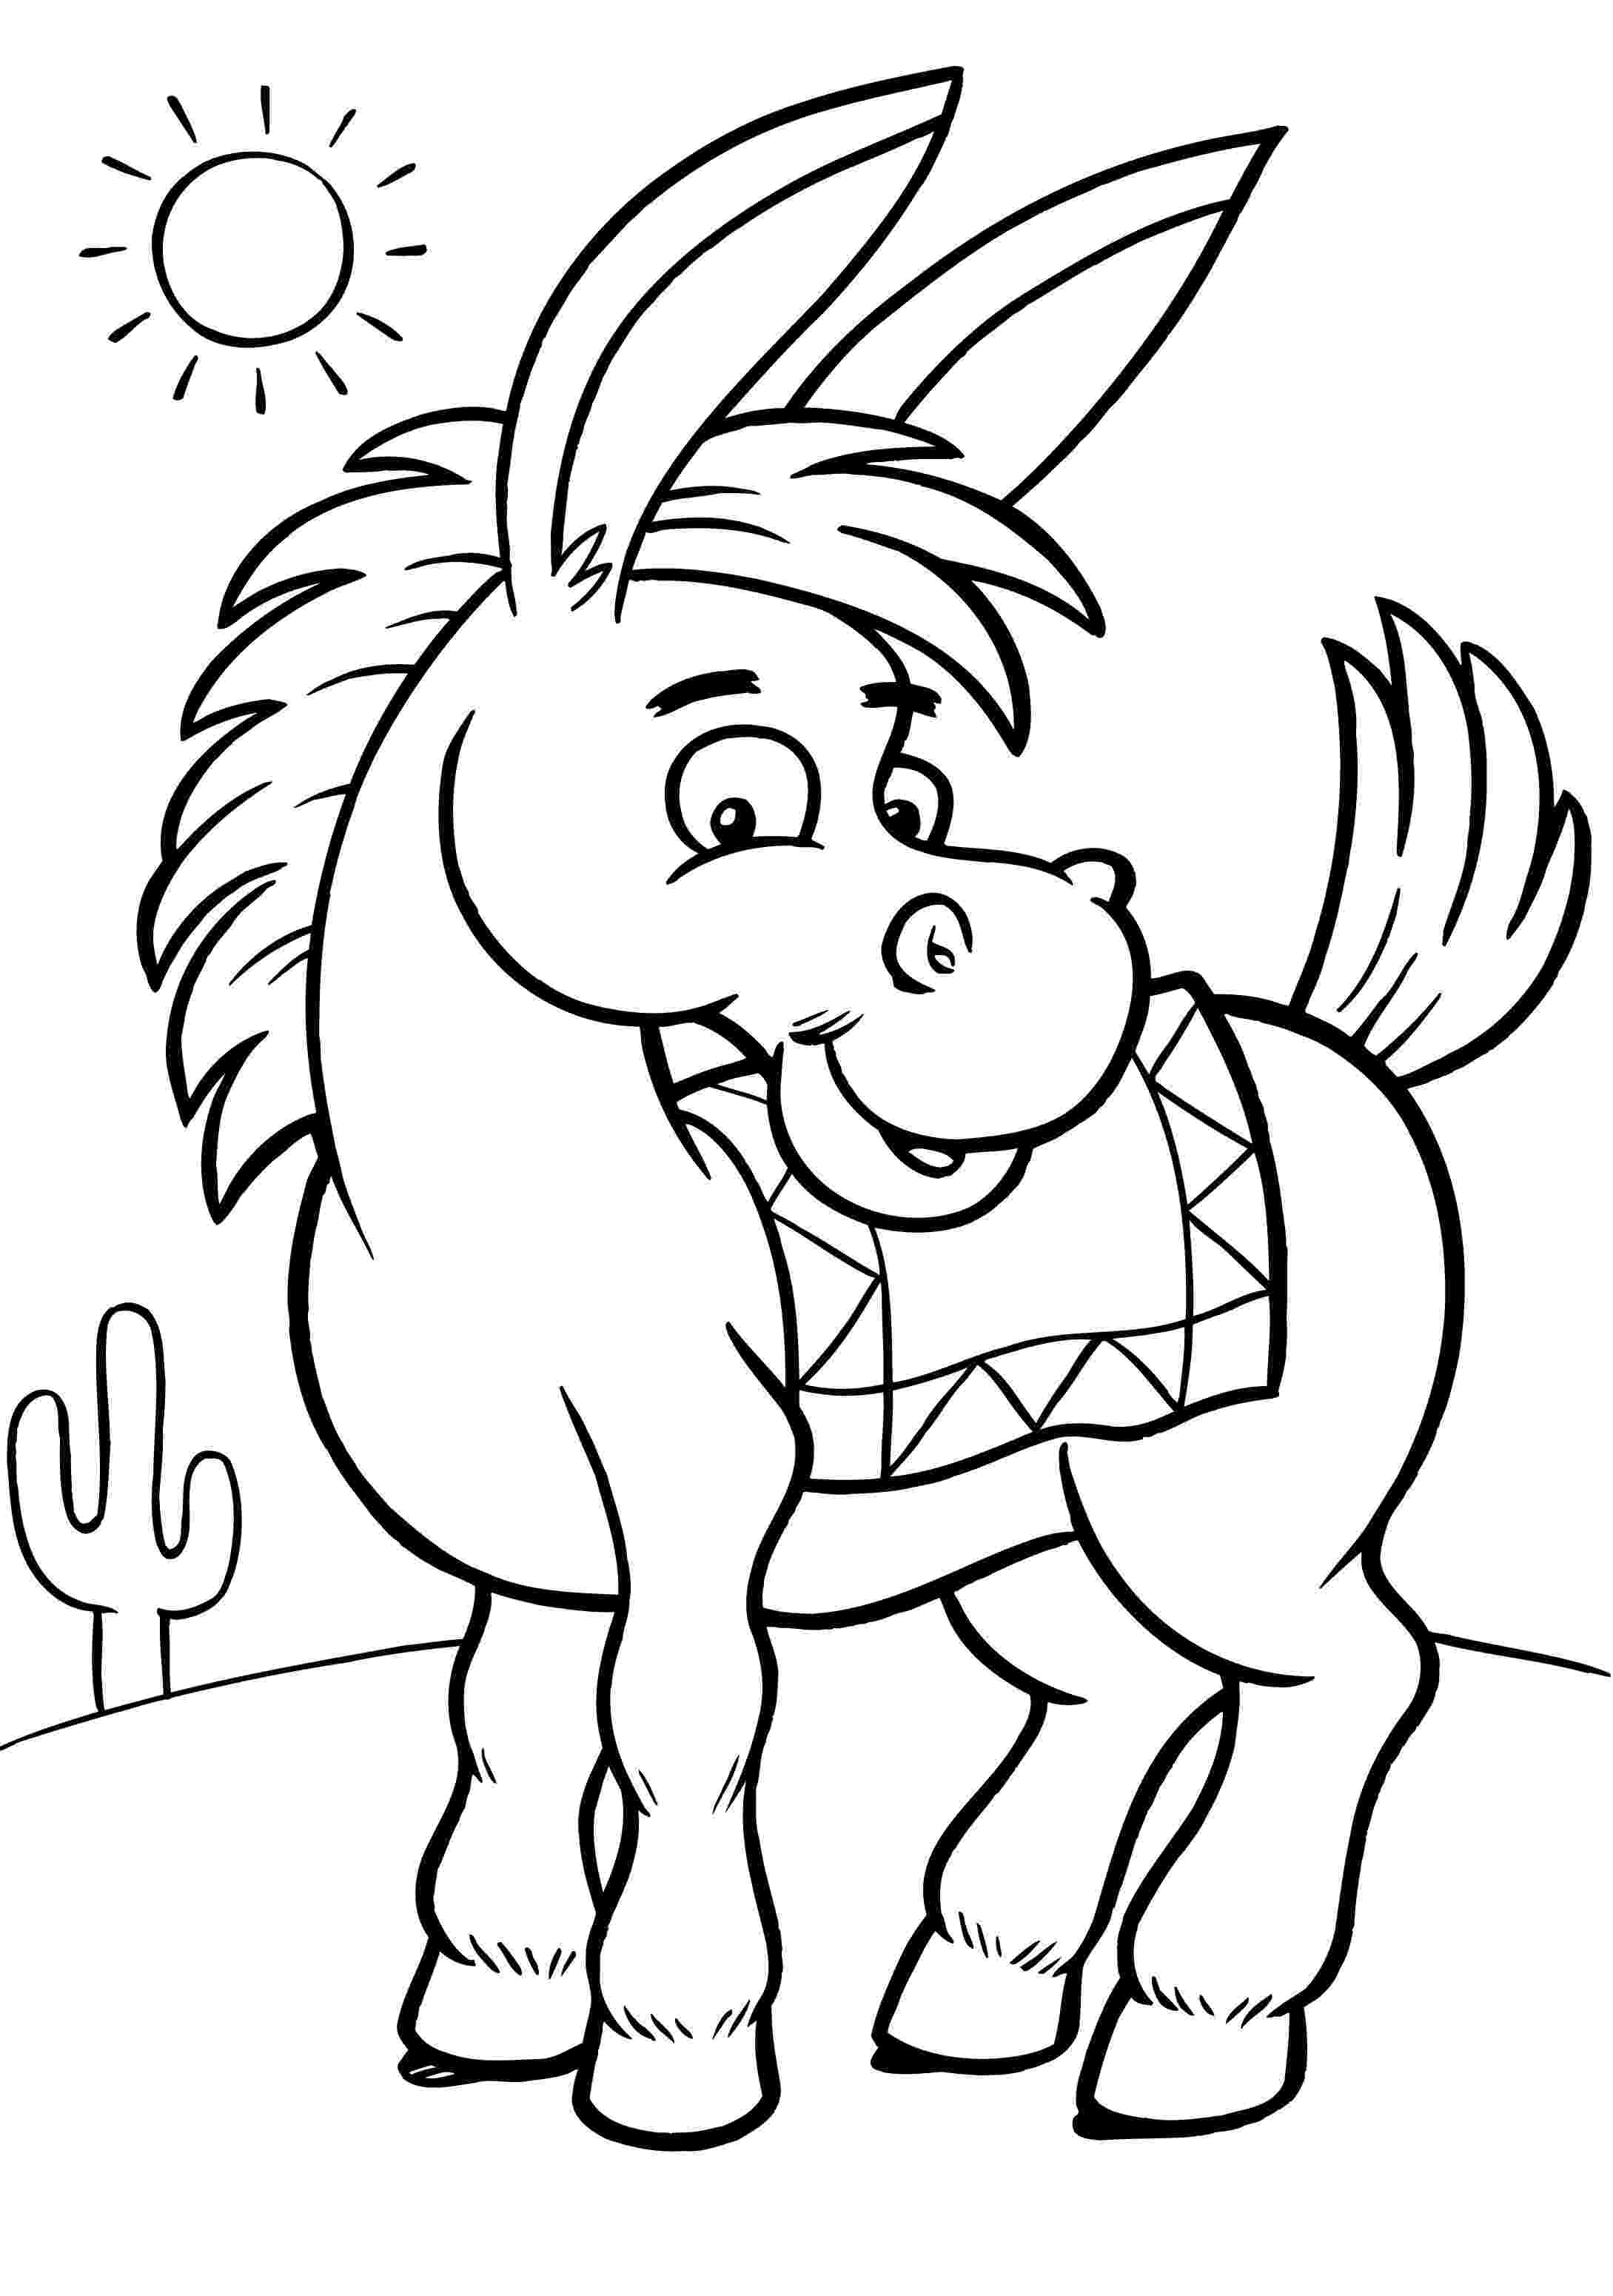 coloring pages donkey free printable donkey coloring pages for kids pages donkey coloring